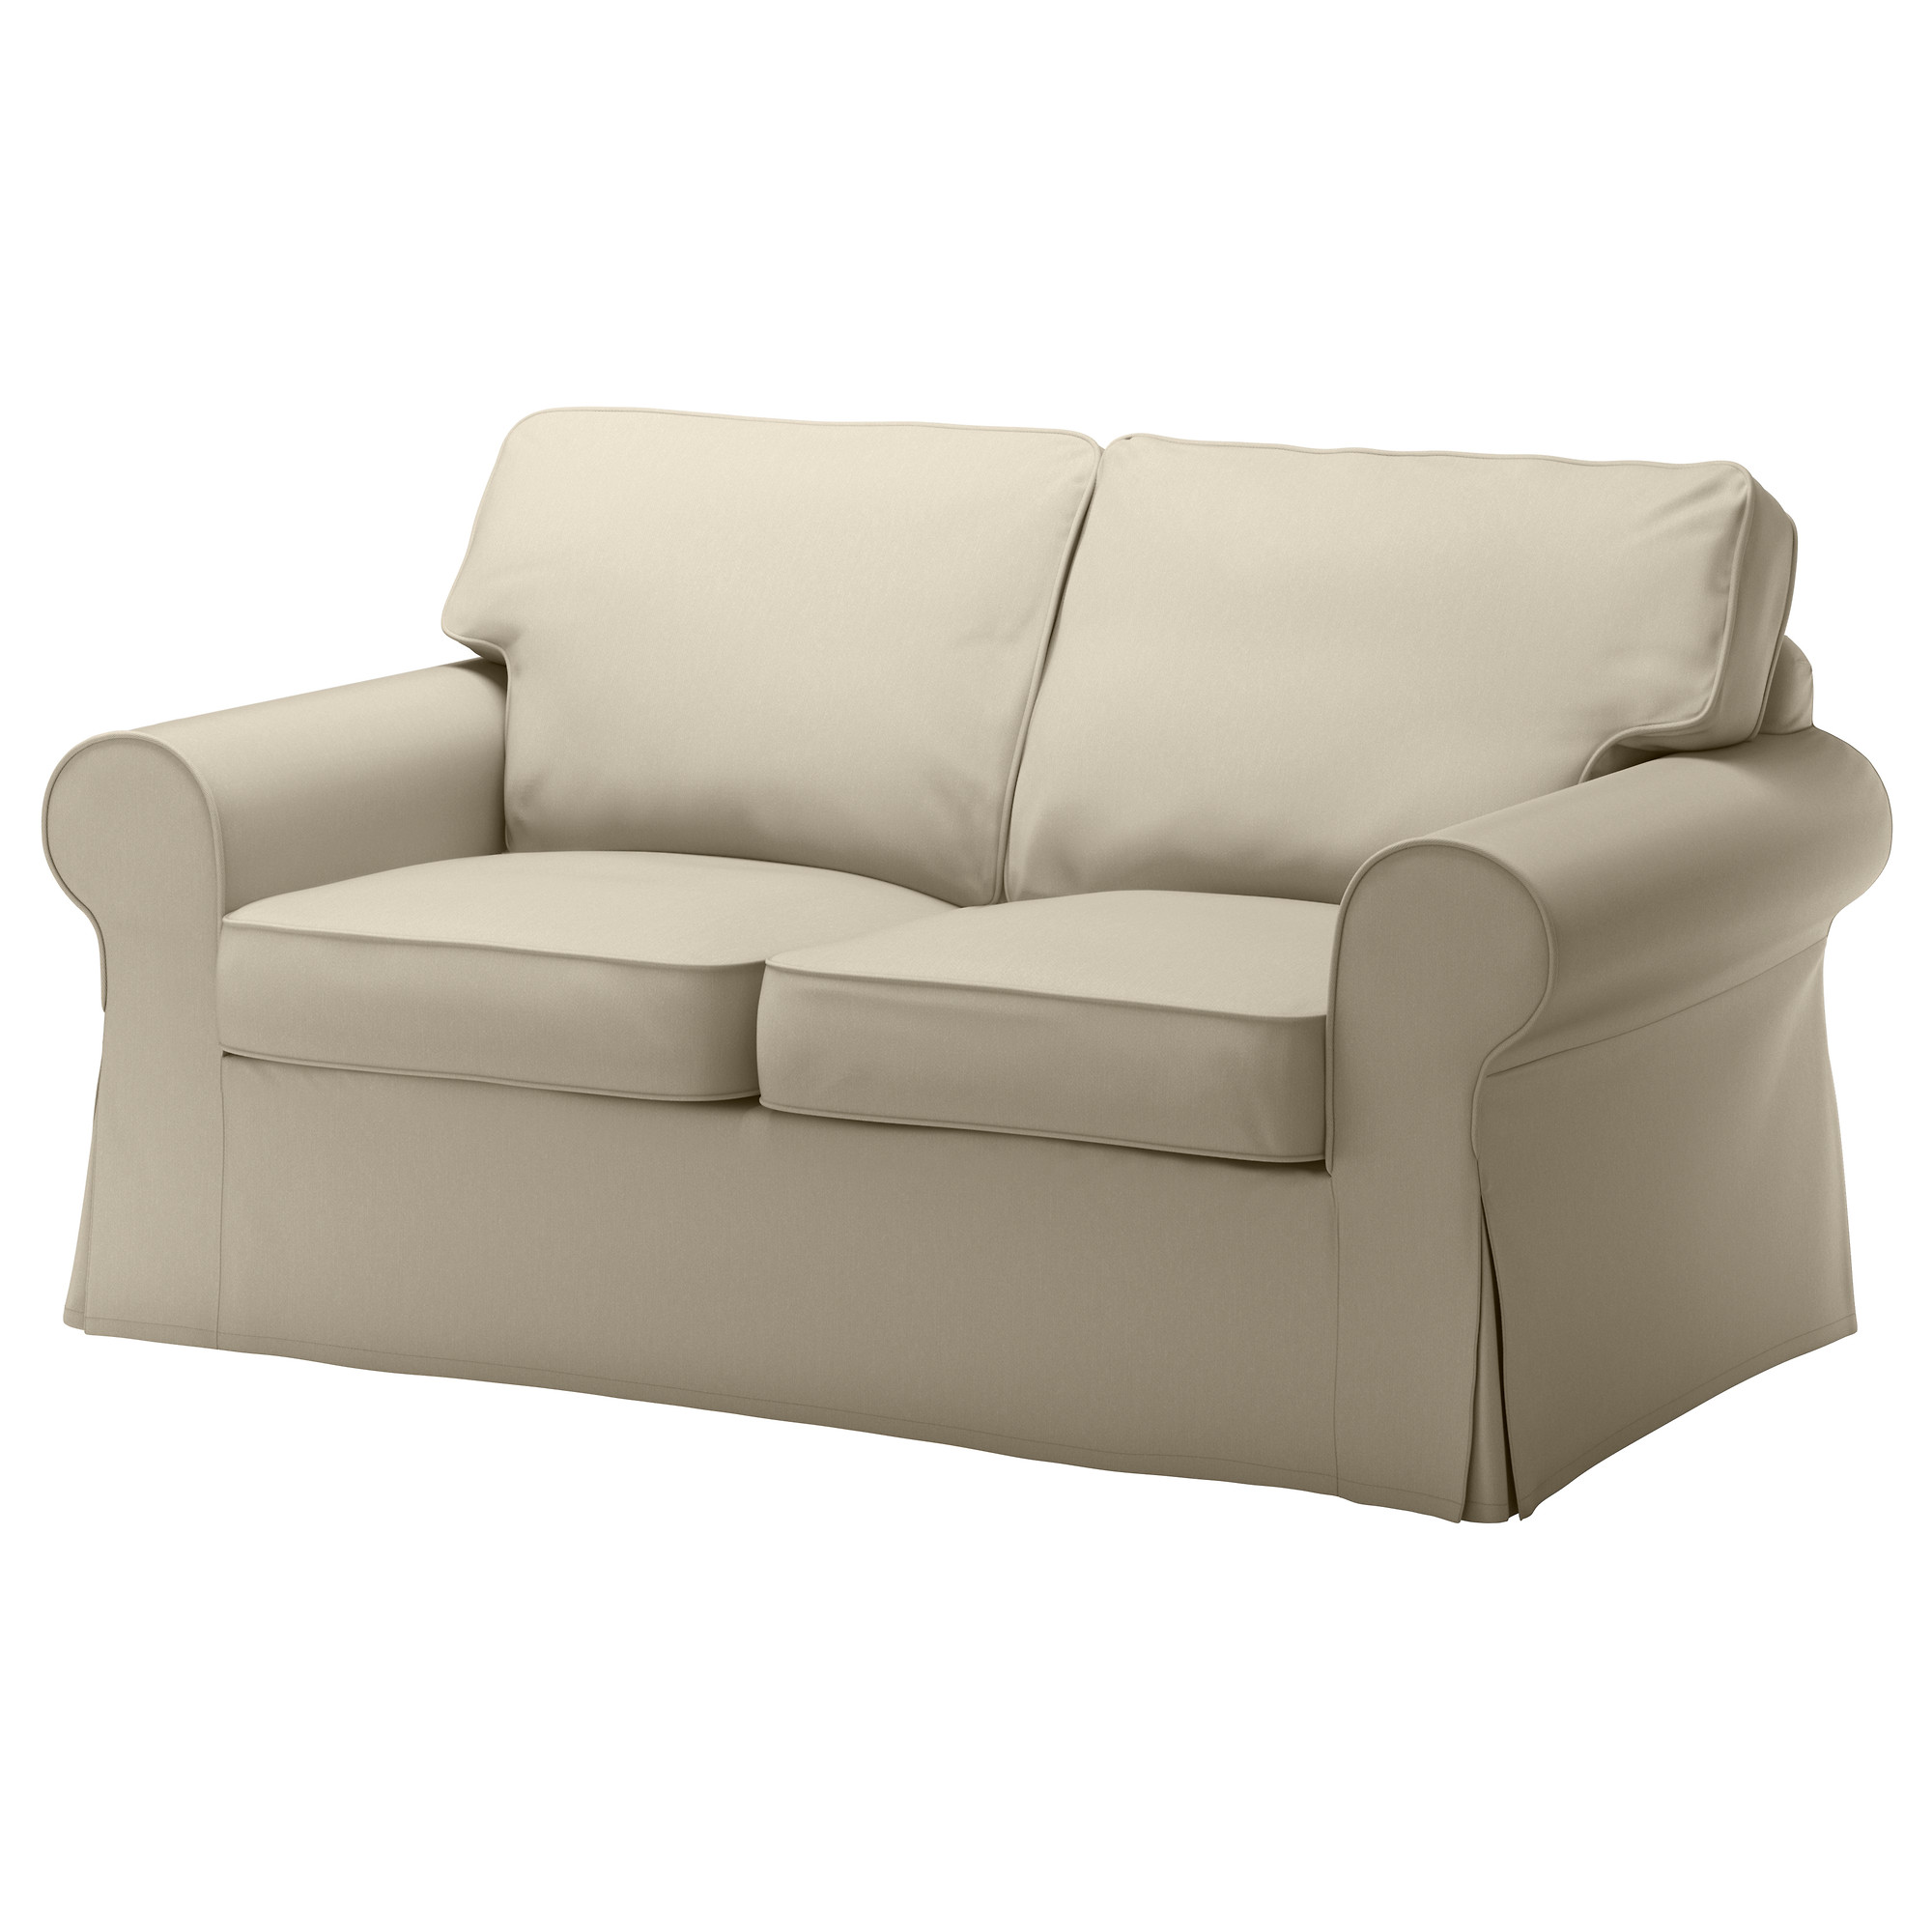 Love seat slip covers for stunning outlook in the living for Furniture covers